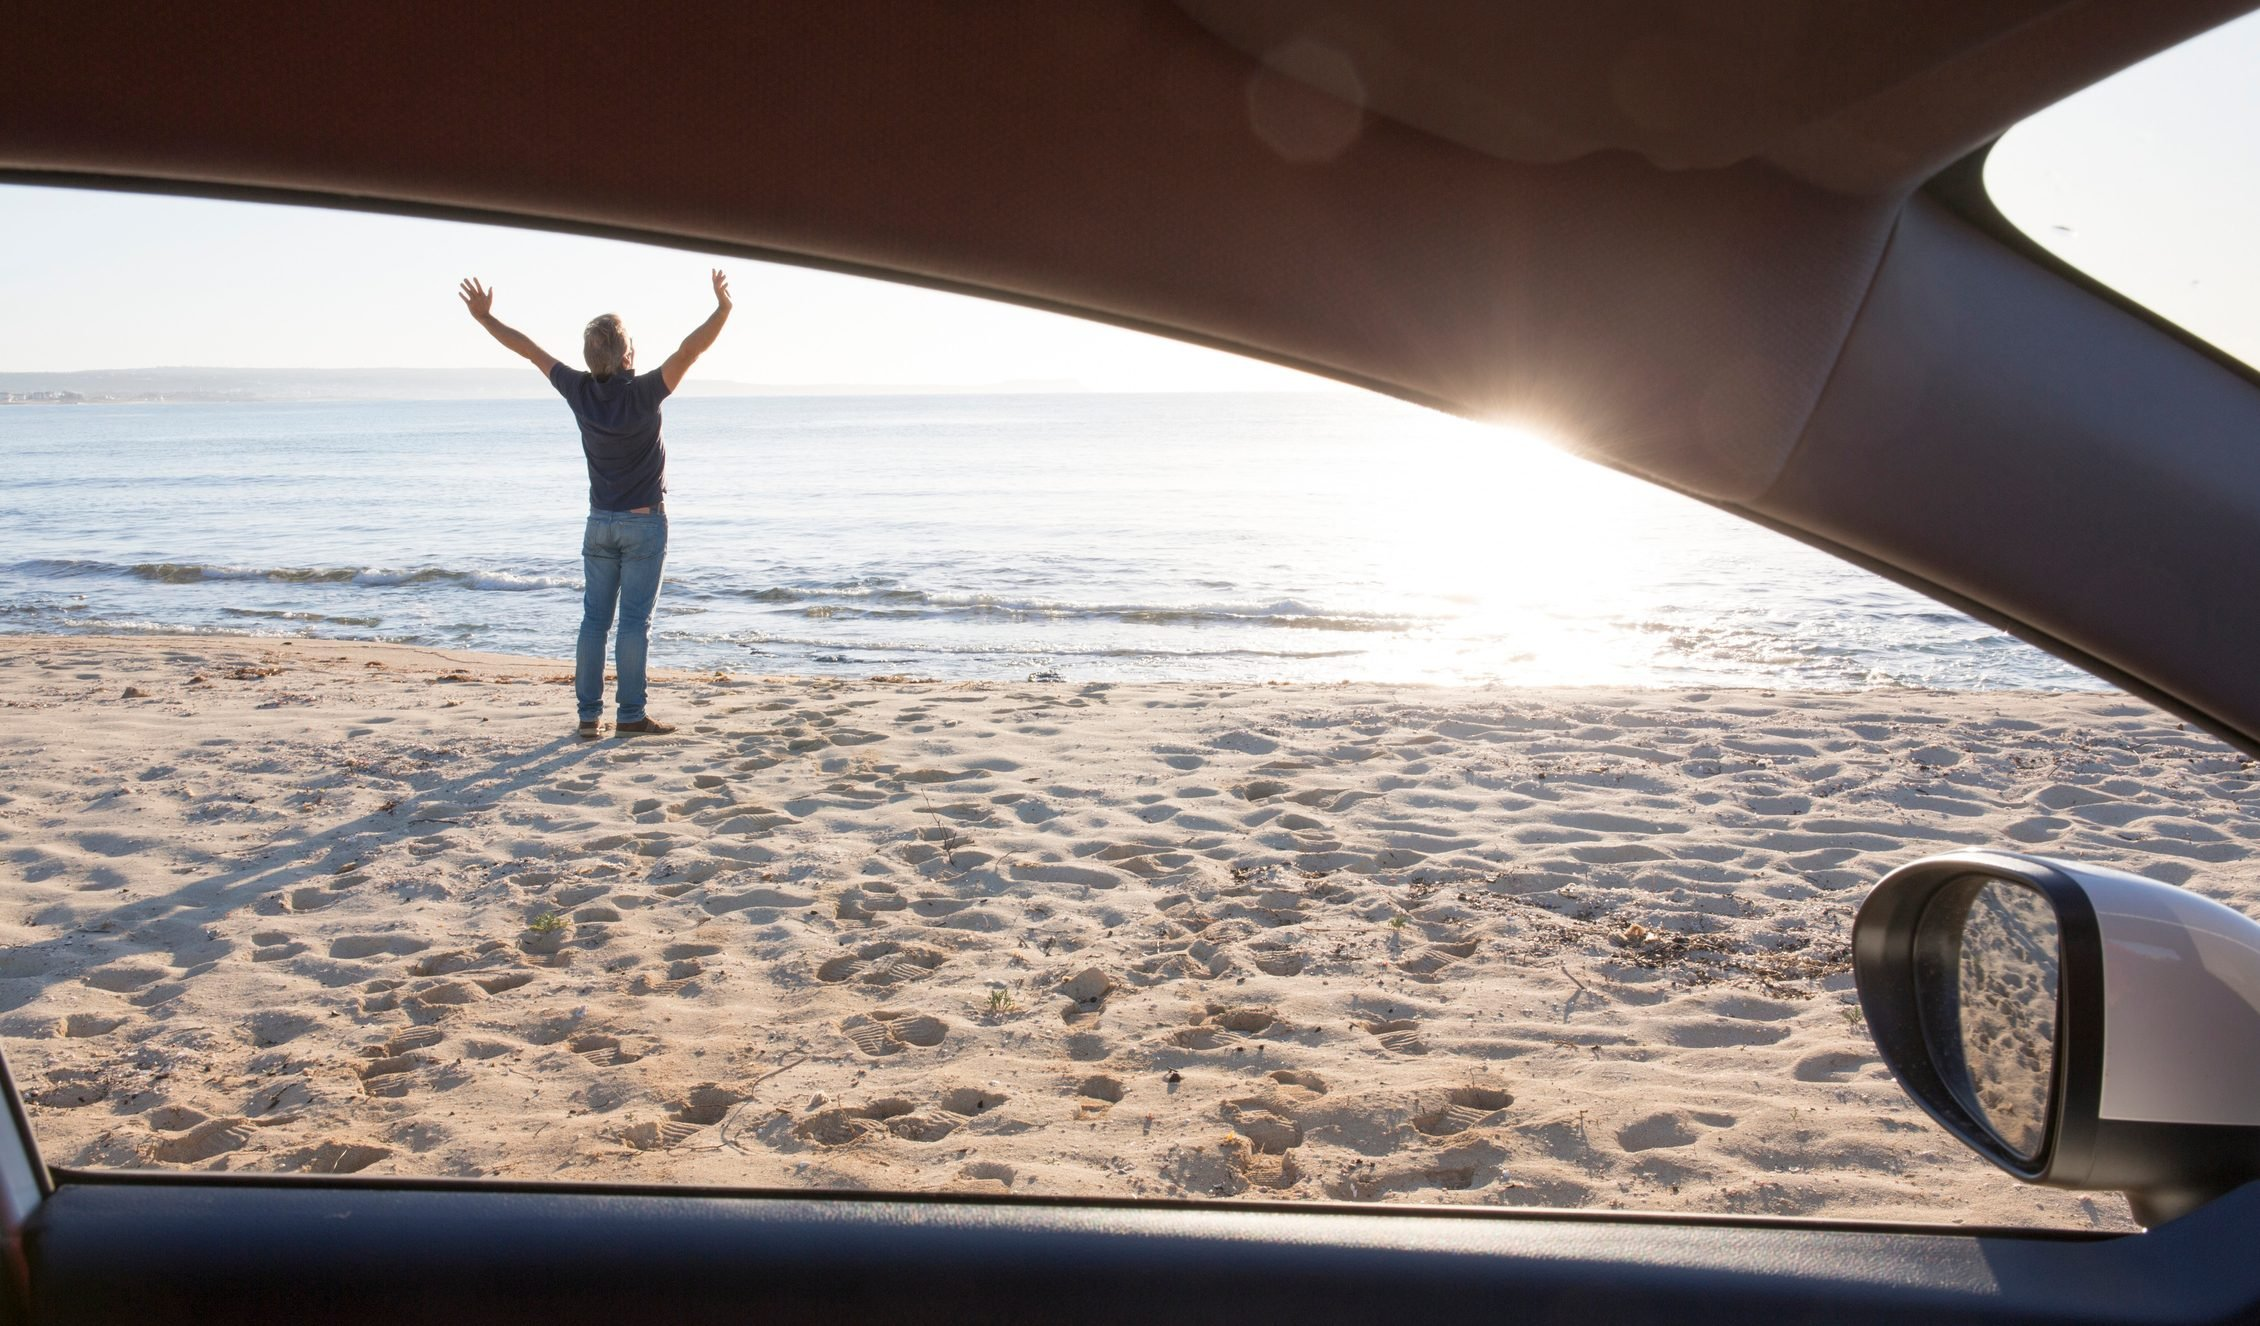 Man stretches outside car on beach, by sea shore